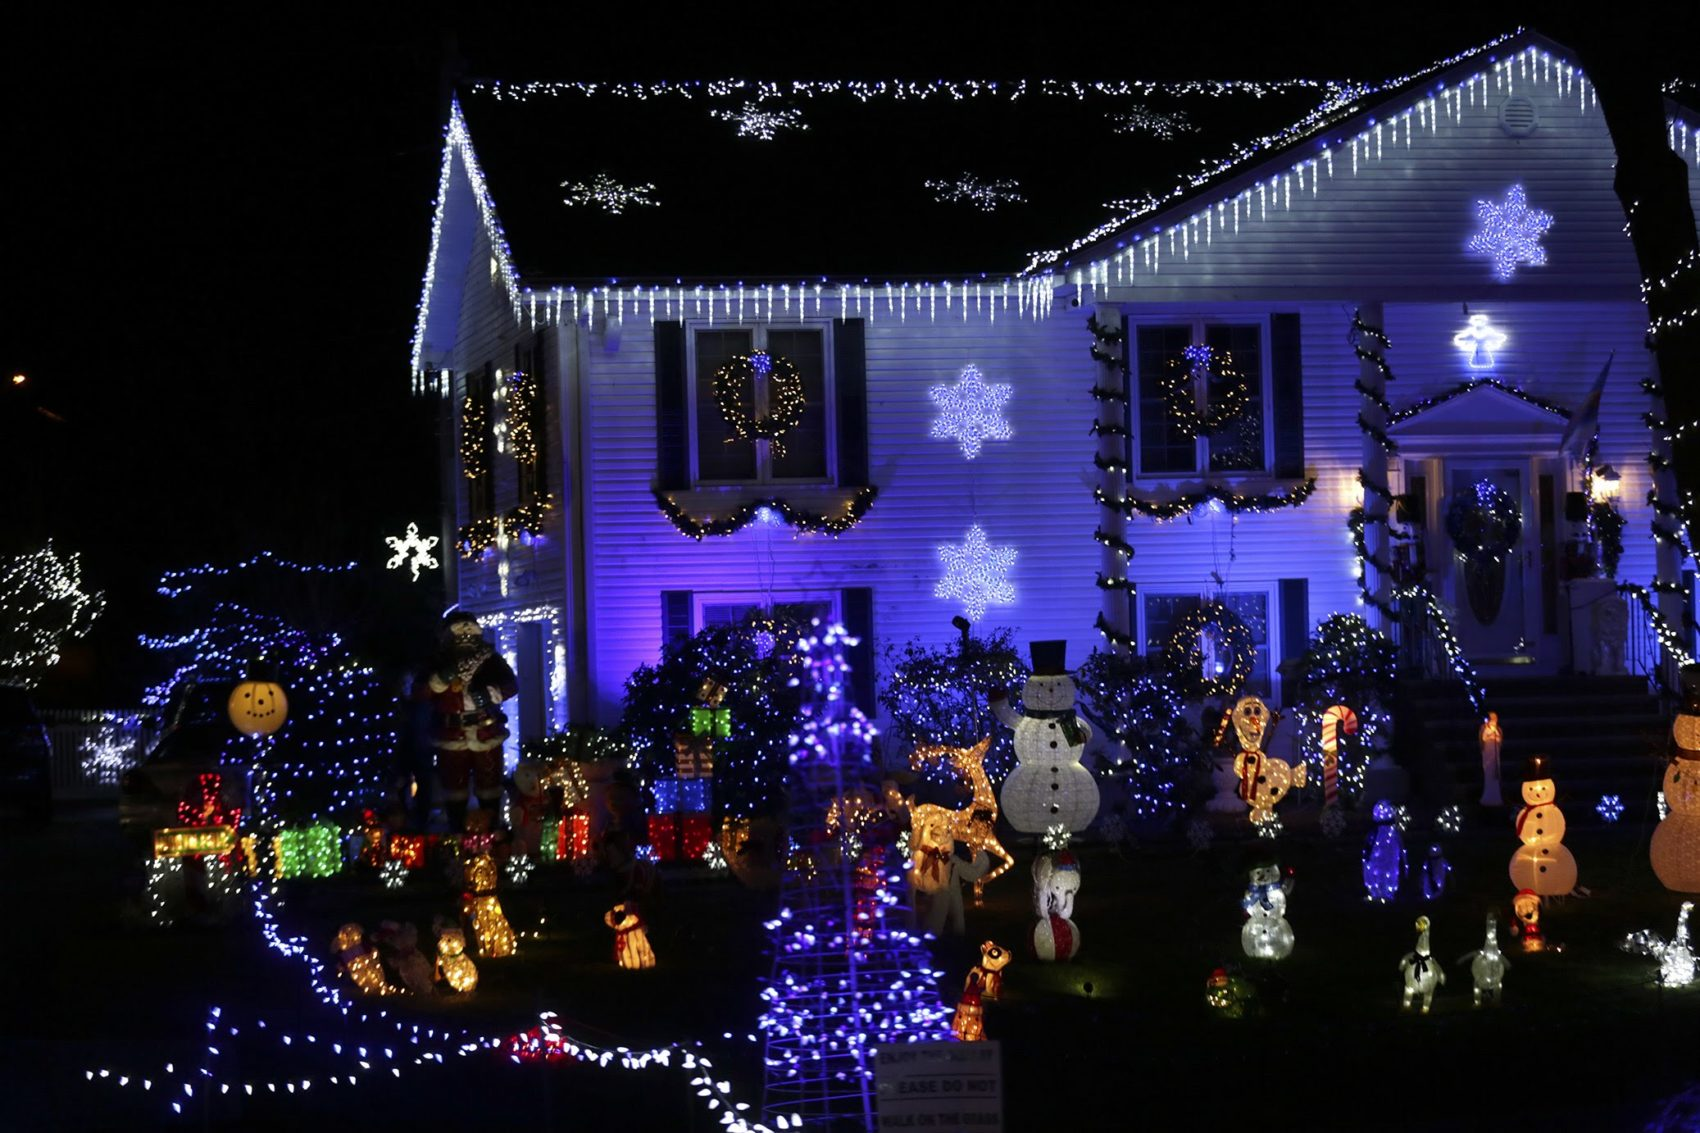 Best Place For Christmas Decorations 12 Places To Check Out The Best Holiday Lights In Greater Boston